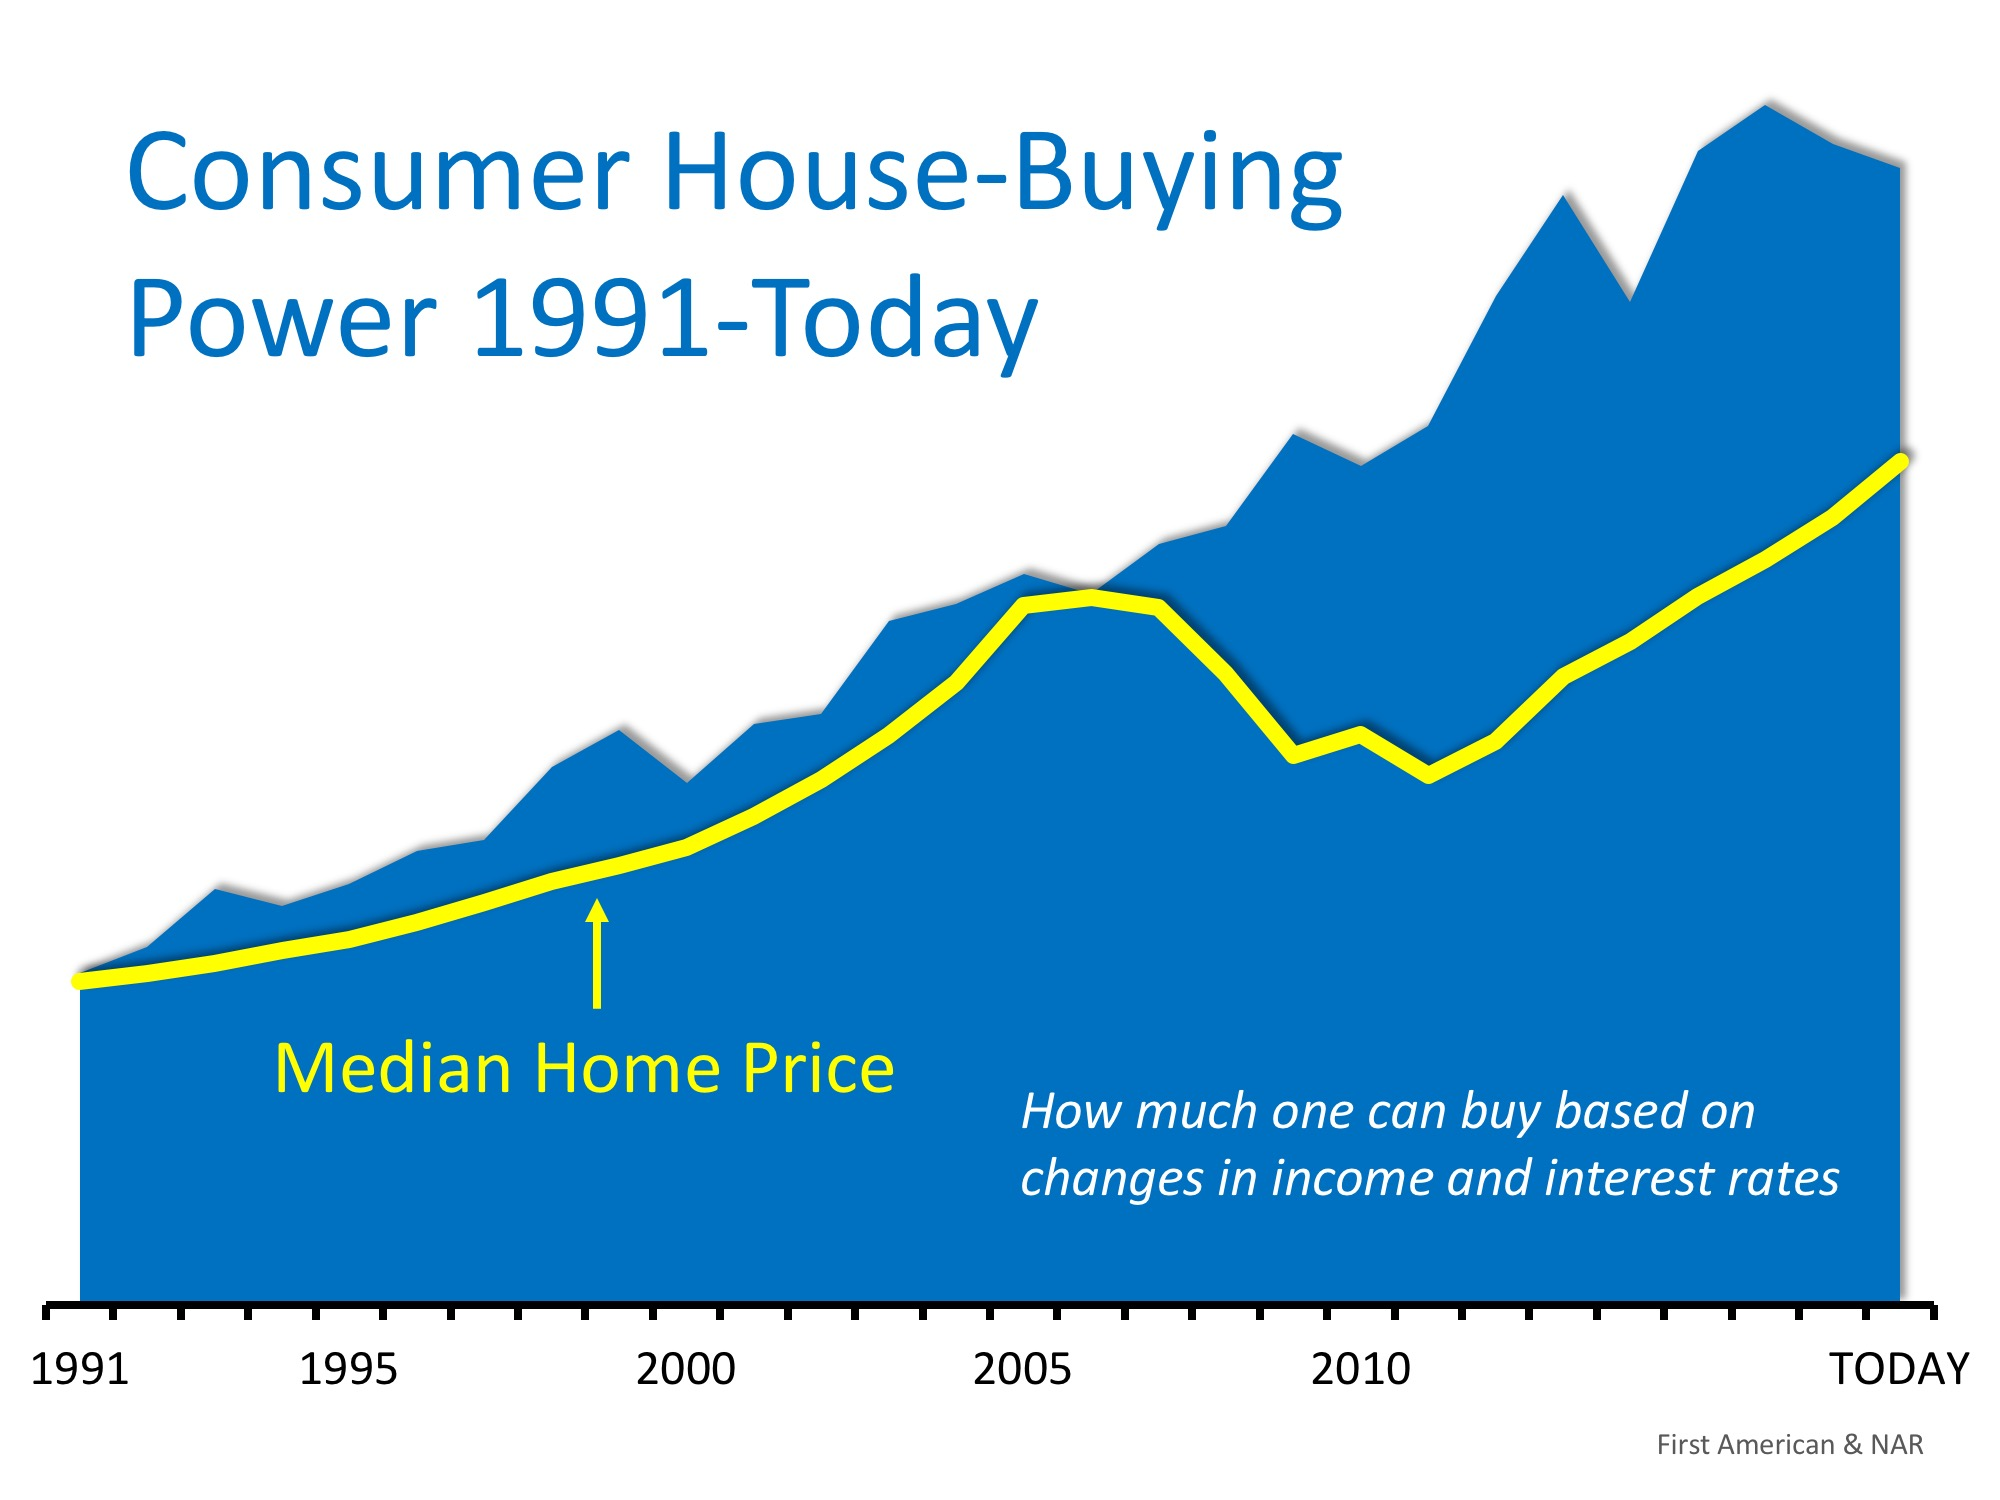 House-Buying Power at Near-Historic Levels | Simplifying The Market